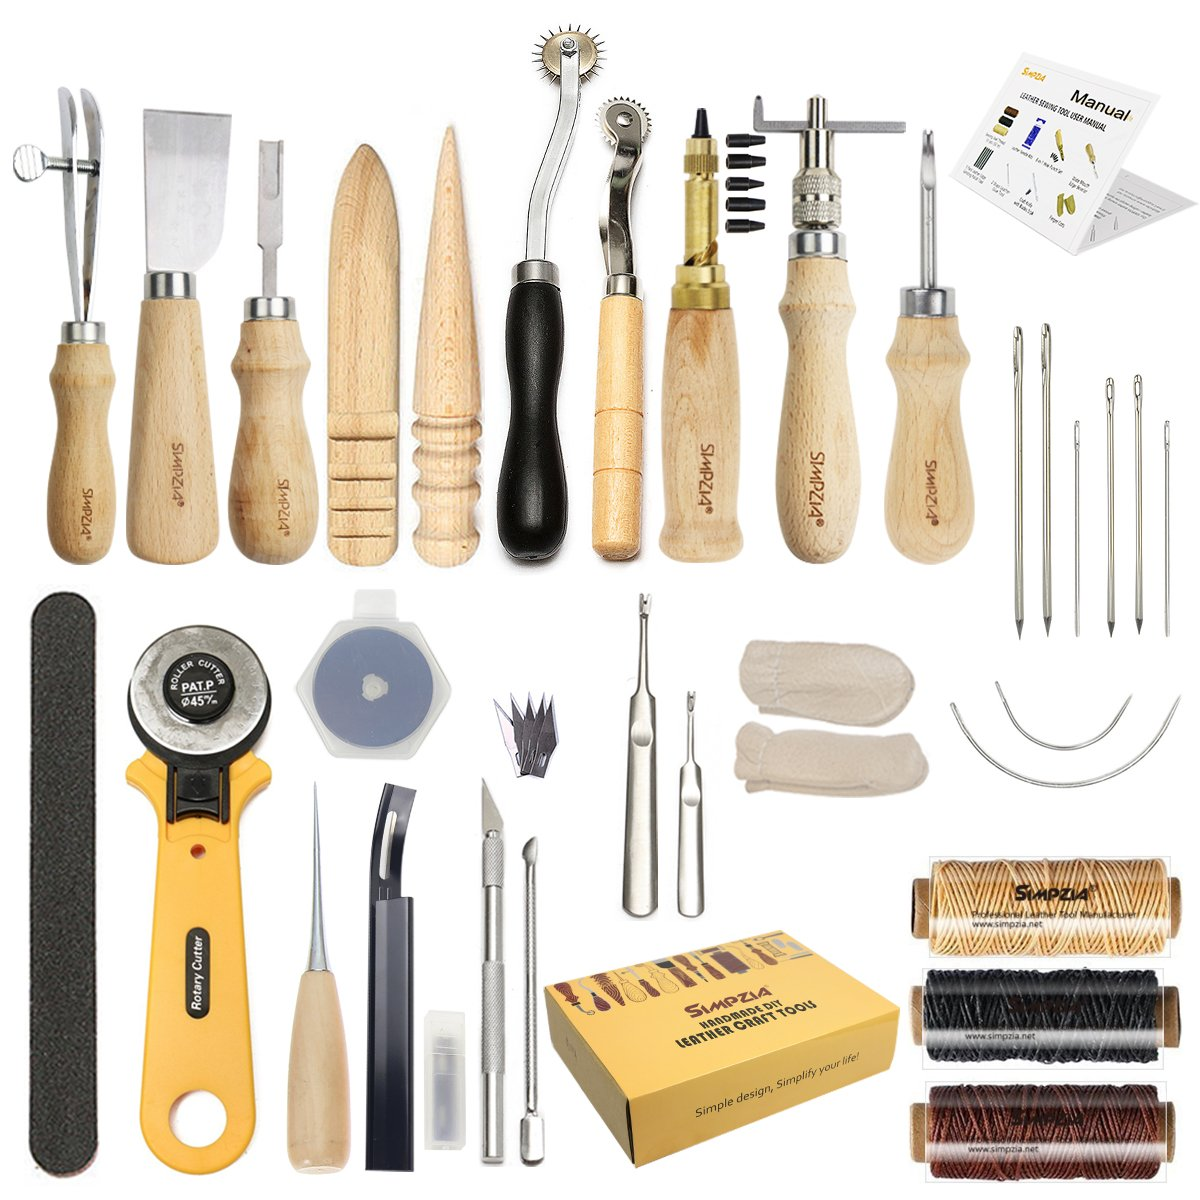 6a8296ca1 Leather Craft Tool SIMPZIA 25 Pcs Leather Sewing Tools Kit Leather DIY Hand  Stitching Tools with Groover Awl Edge Creaser for Sewing Leather